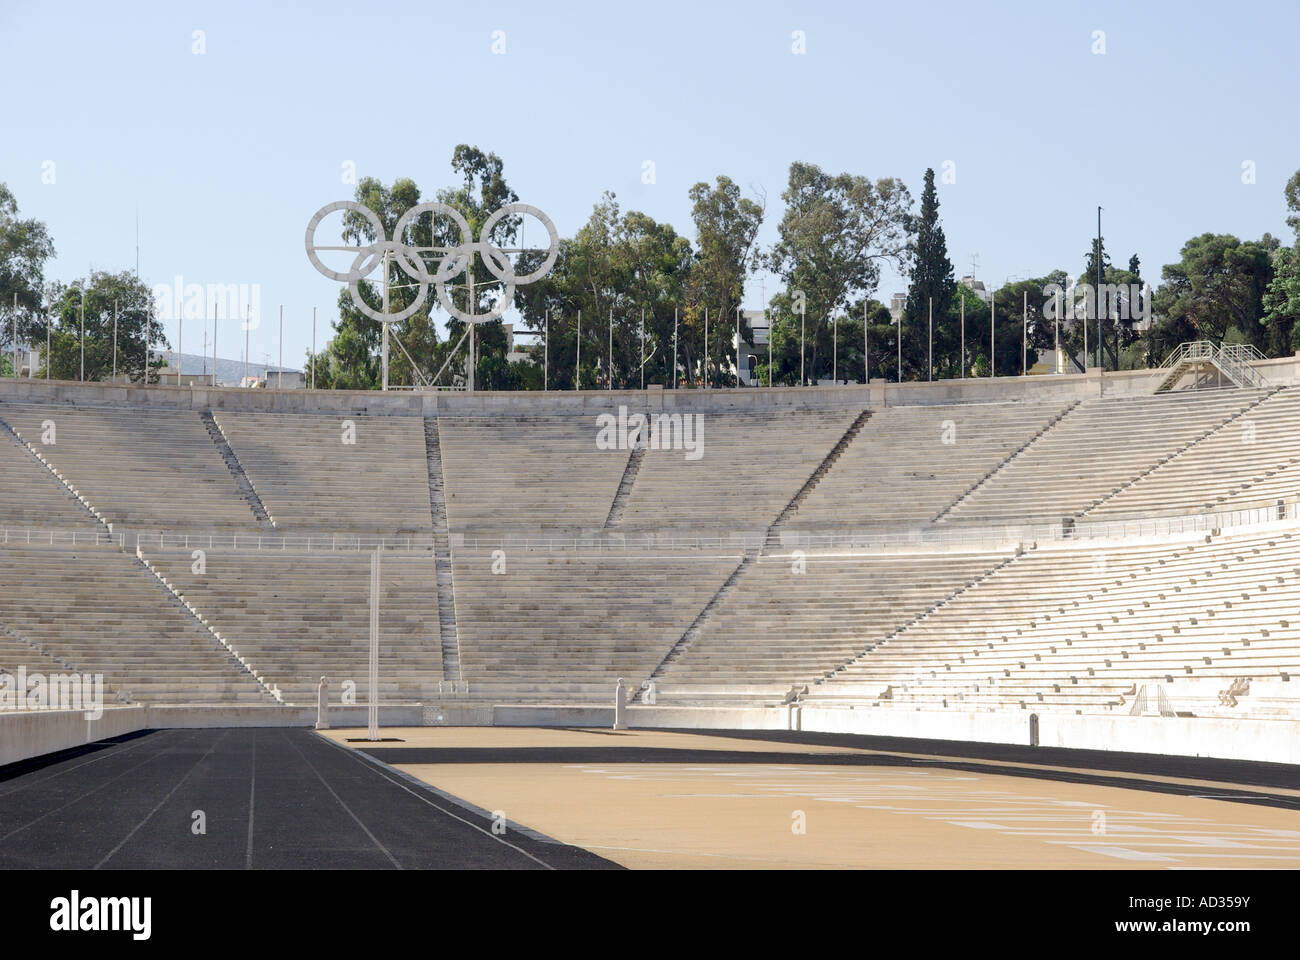 Athens the Panathinaiko white marble arena and track location for the Greek Olympic Games of 1896 now a major tourist Stock Photo